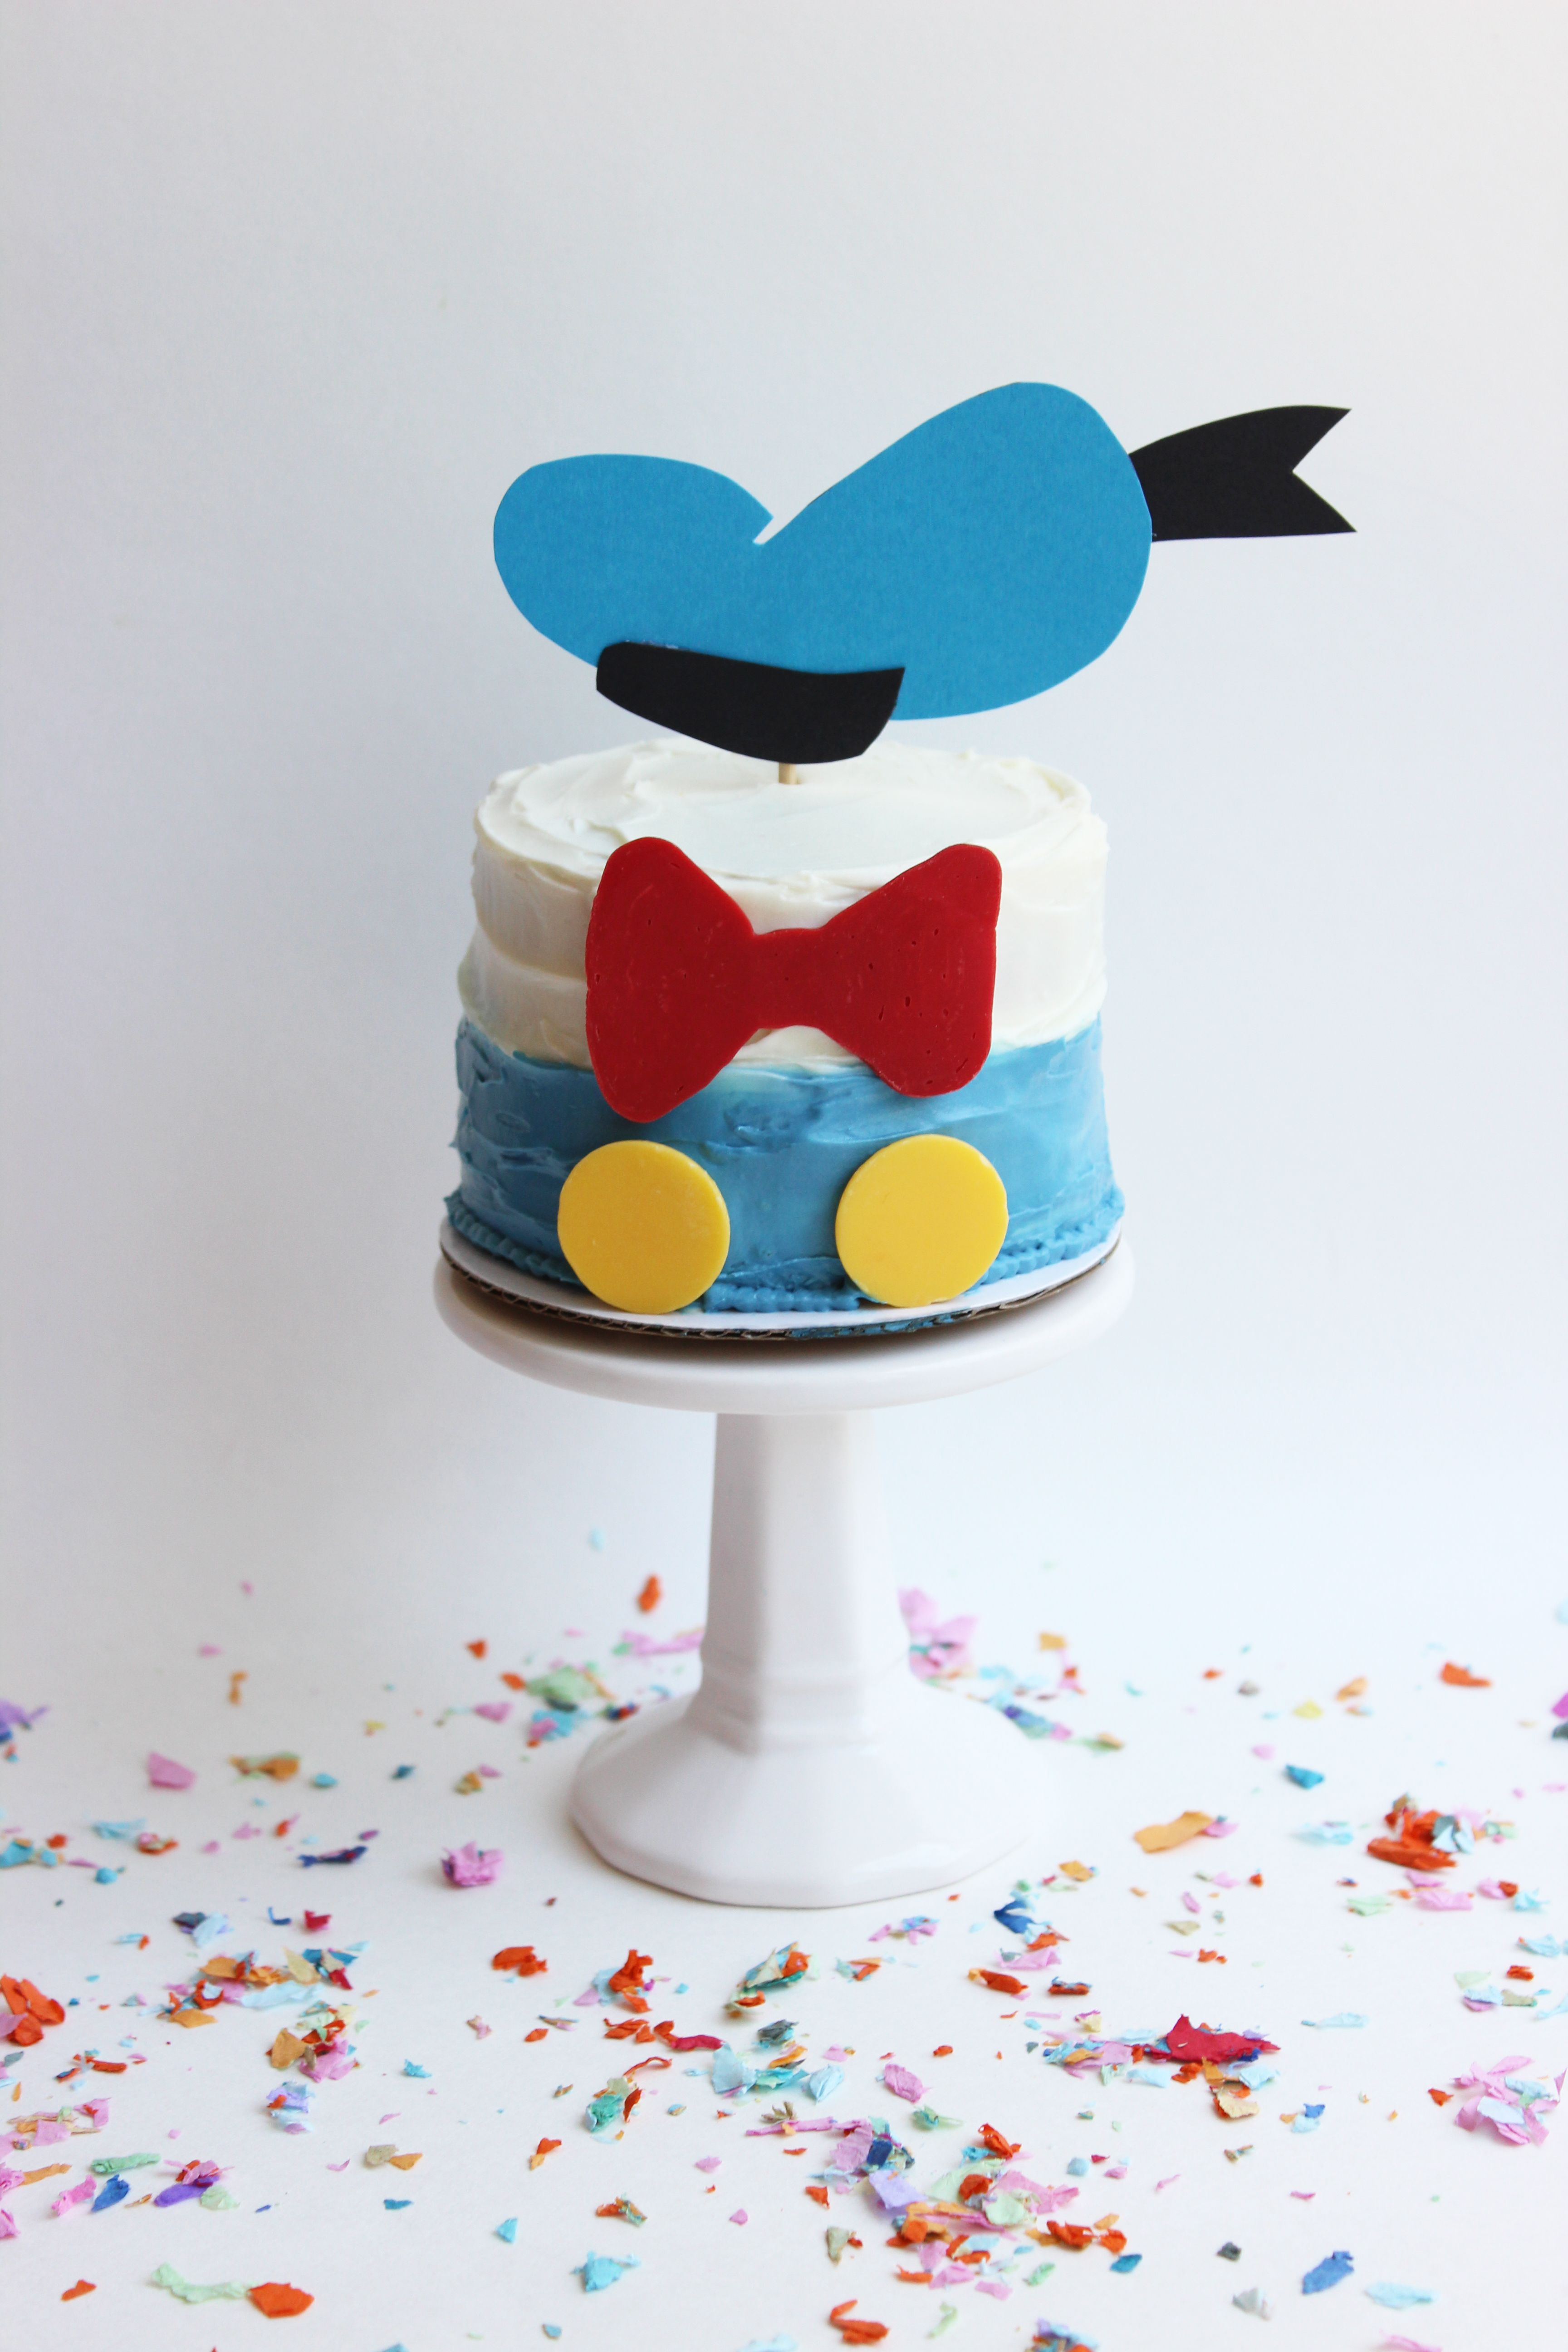 7ae71d9ae Your tastebuds will thank you for this Donald Duck-inspired treat. Donald  Duck Cake